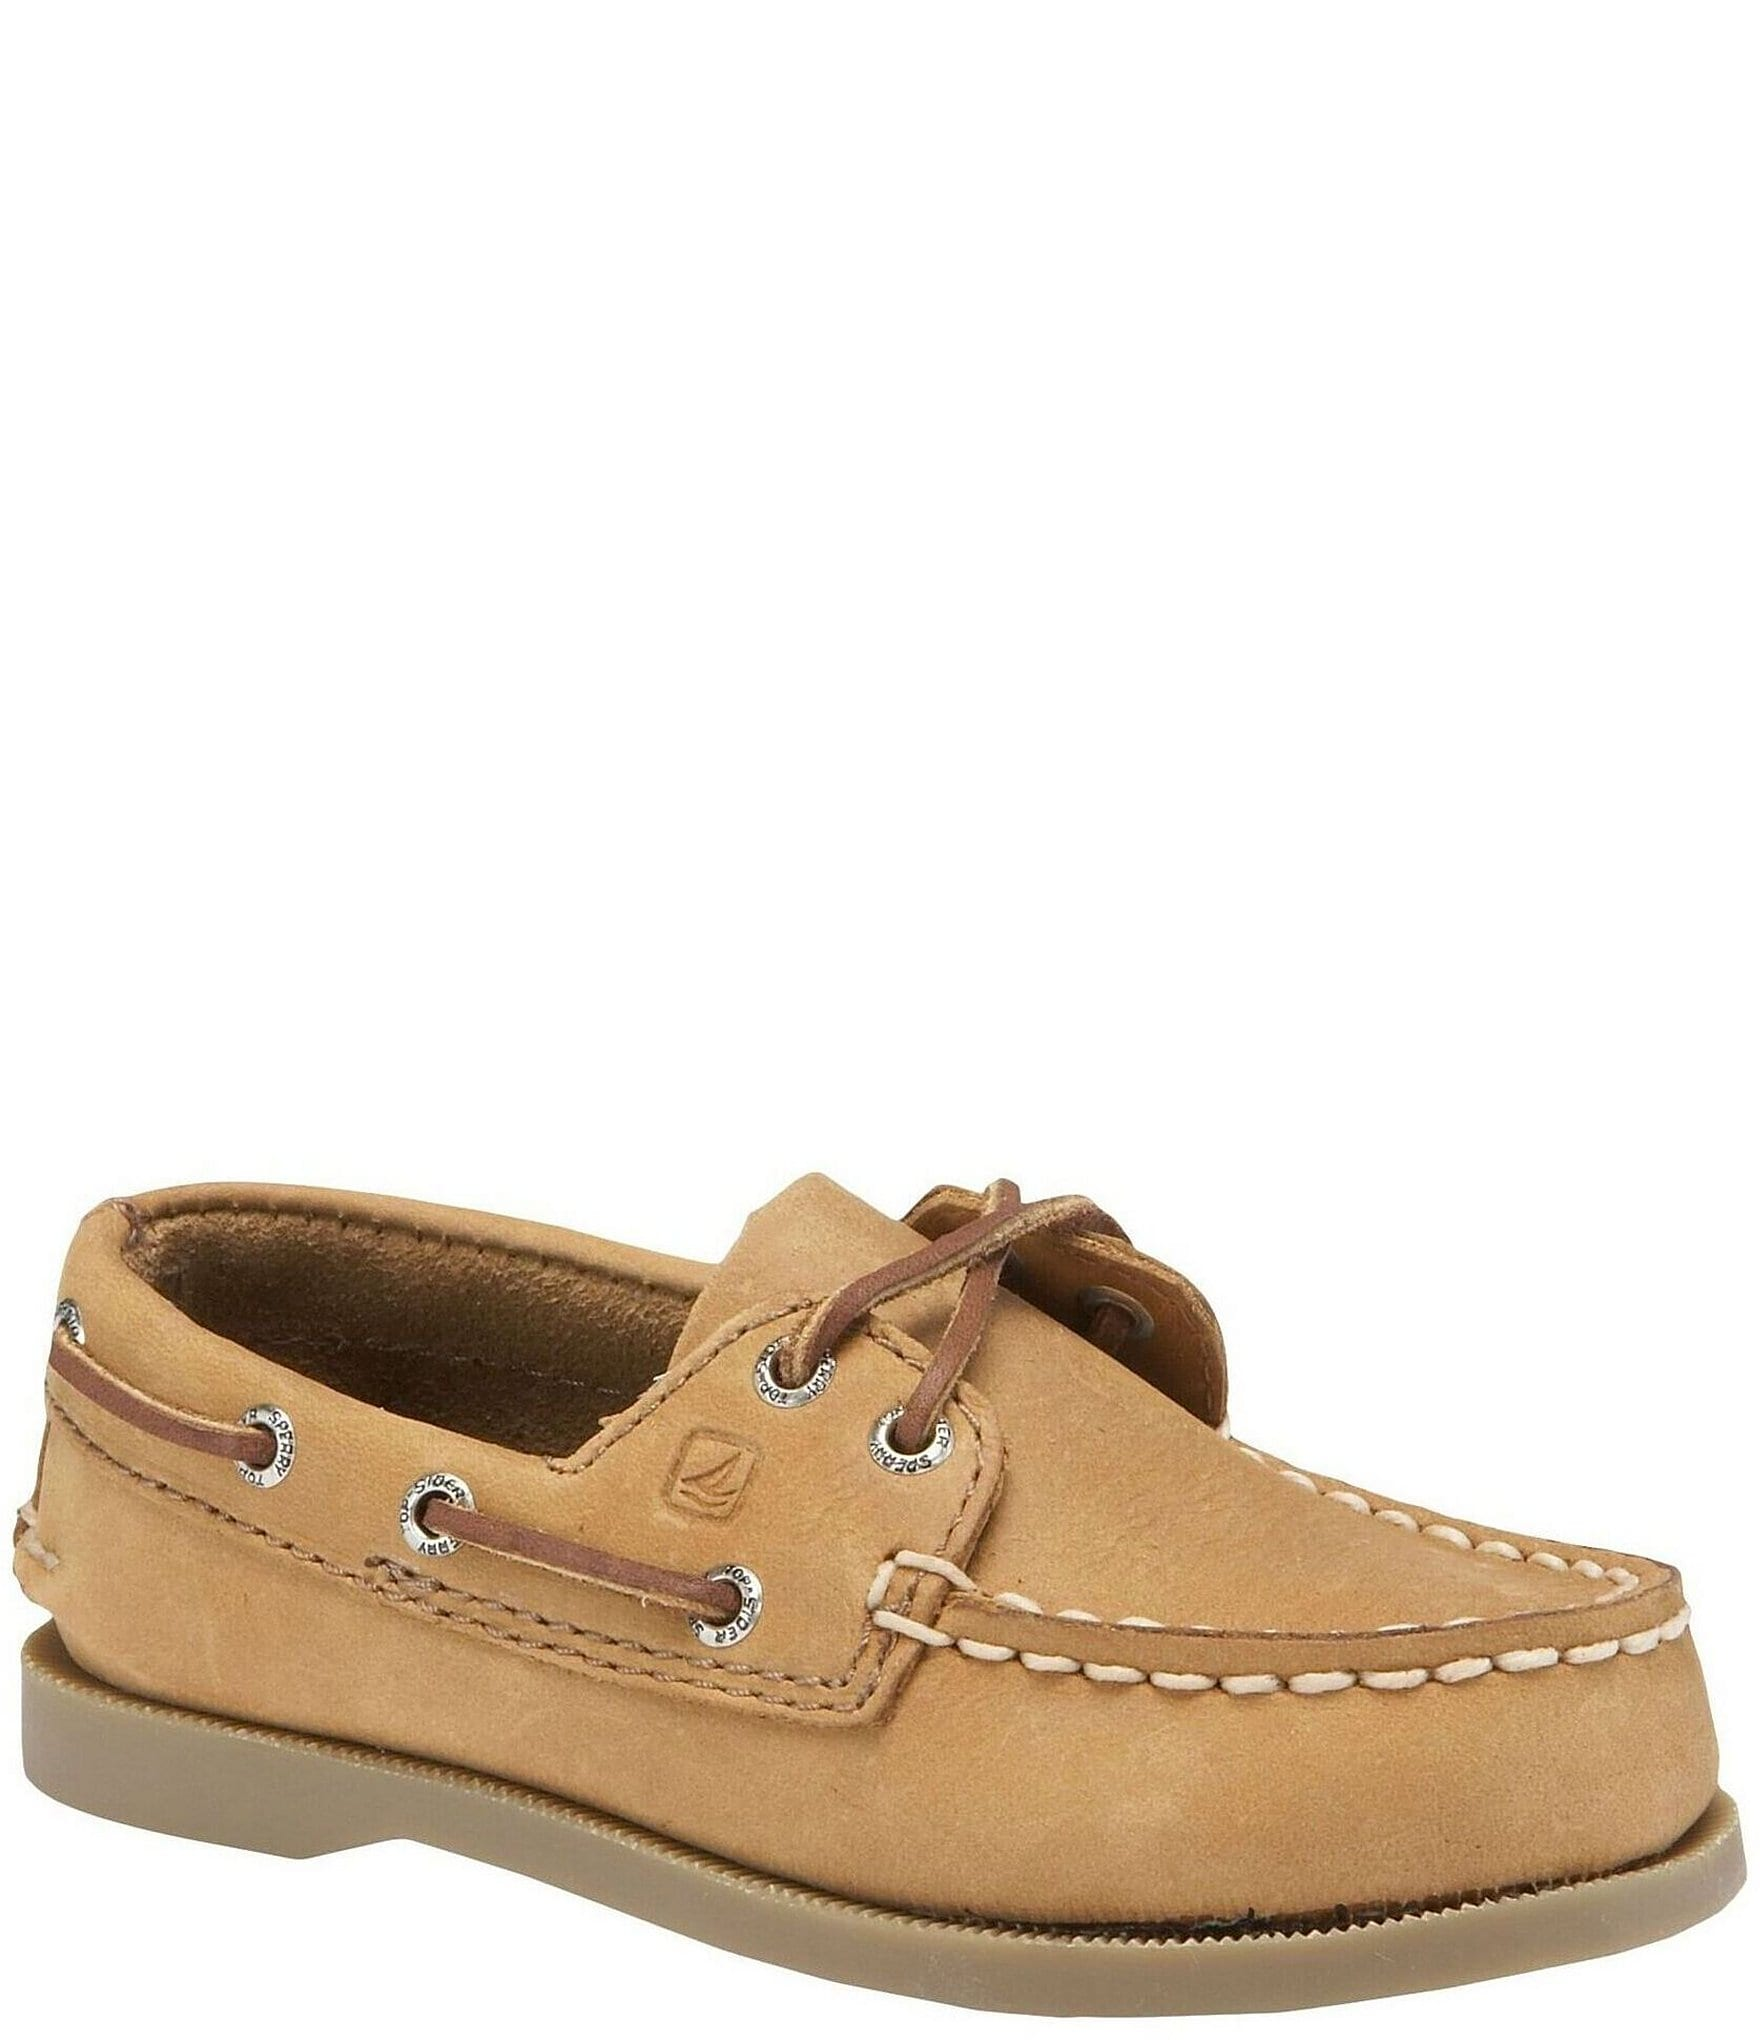 Sperry Top Sider A O Boys Boat Shoes